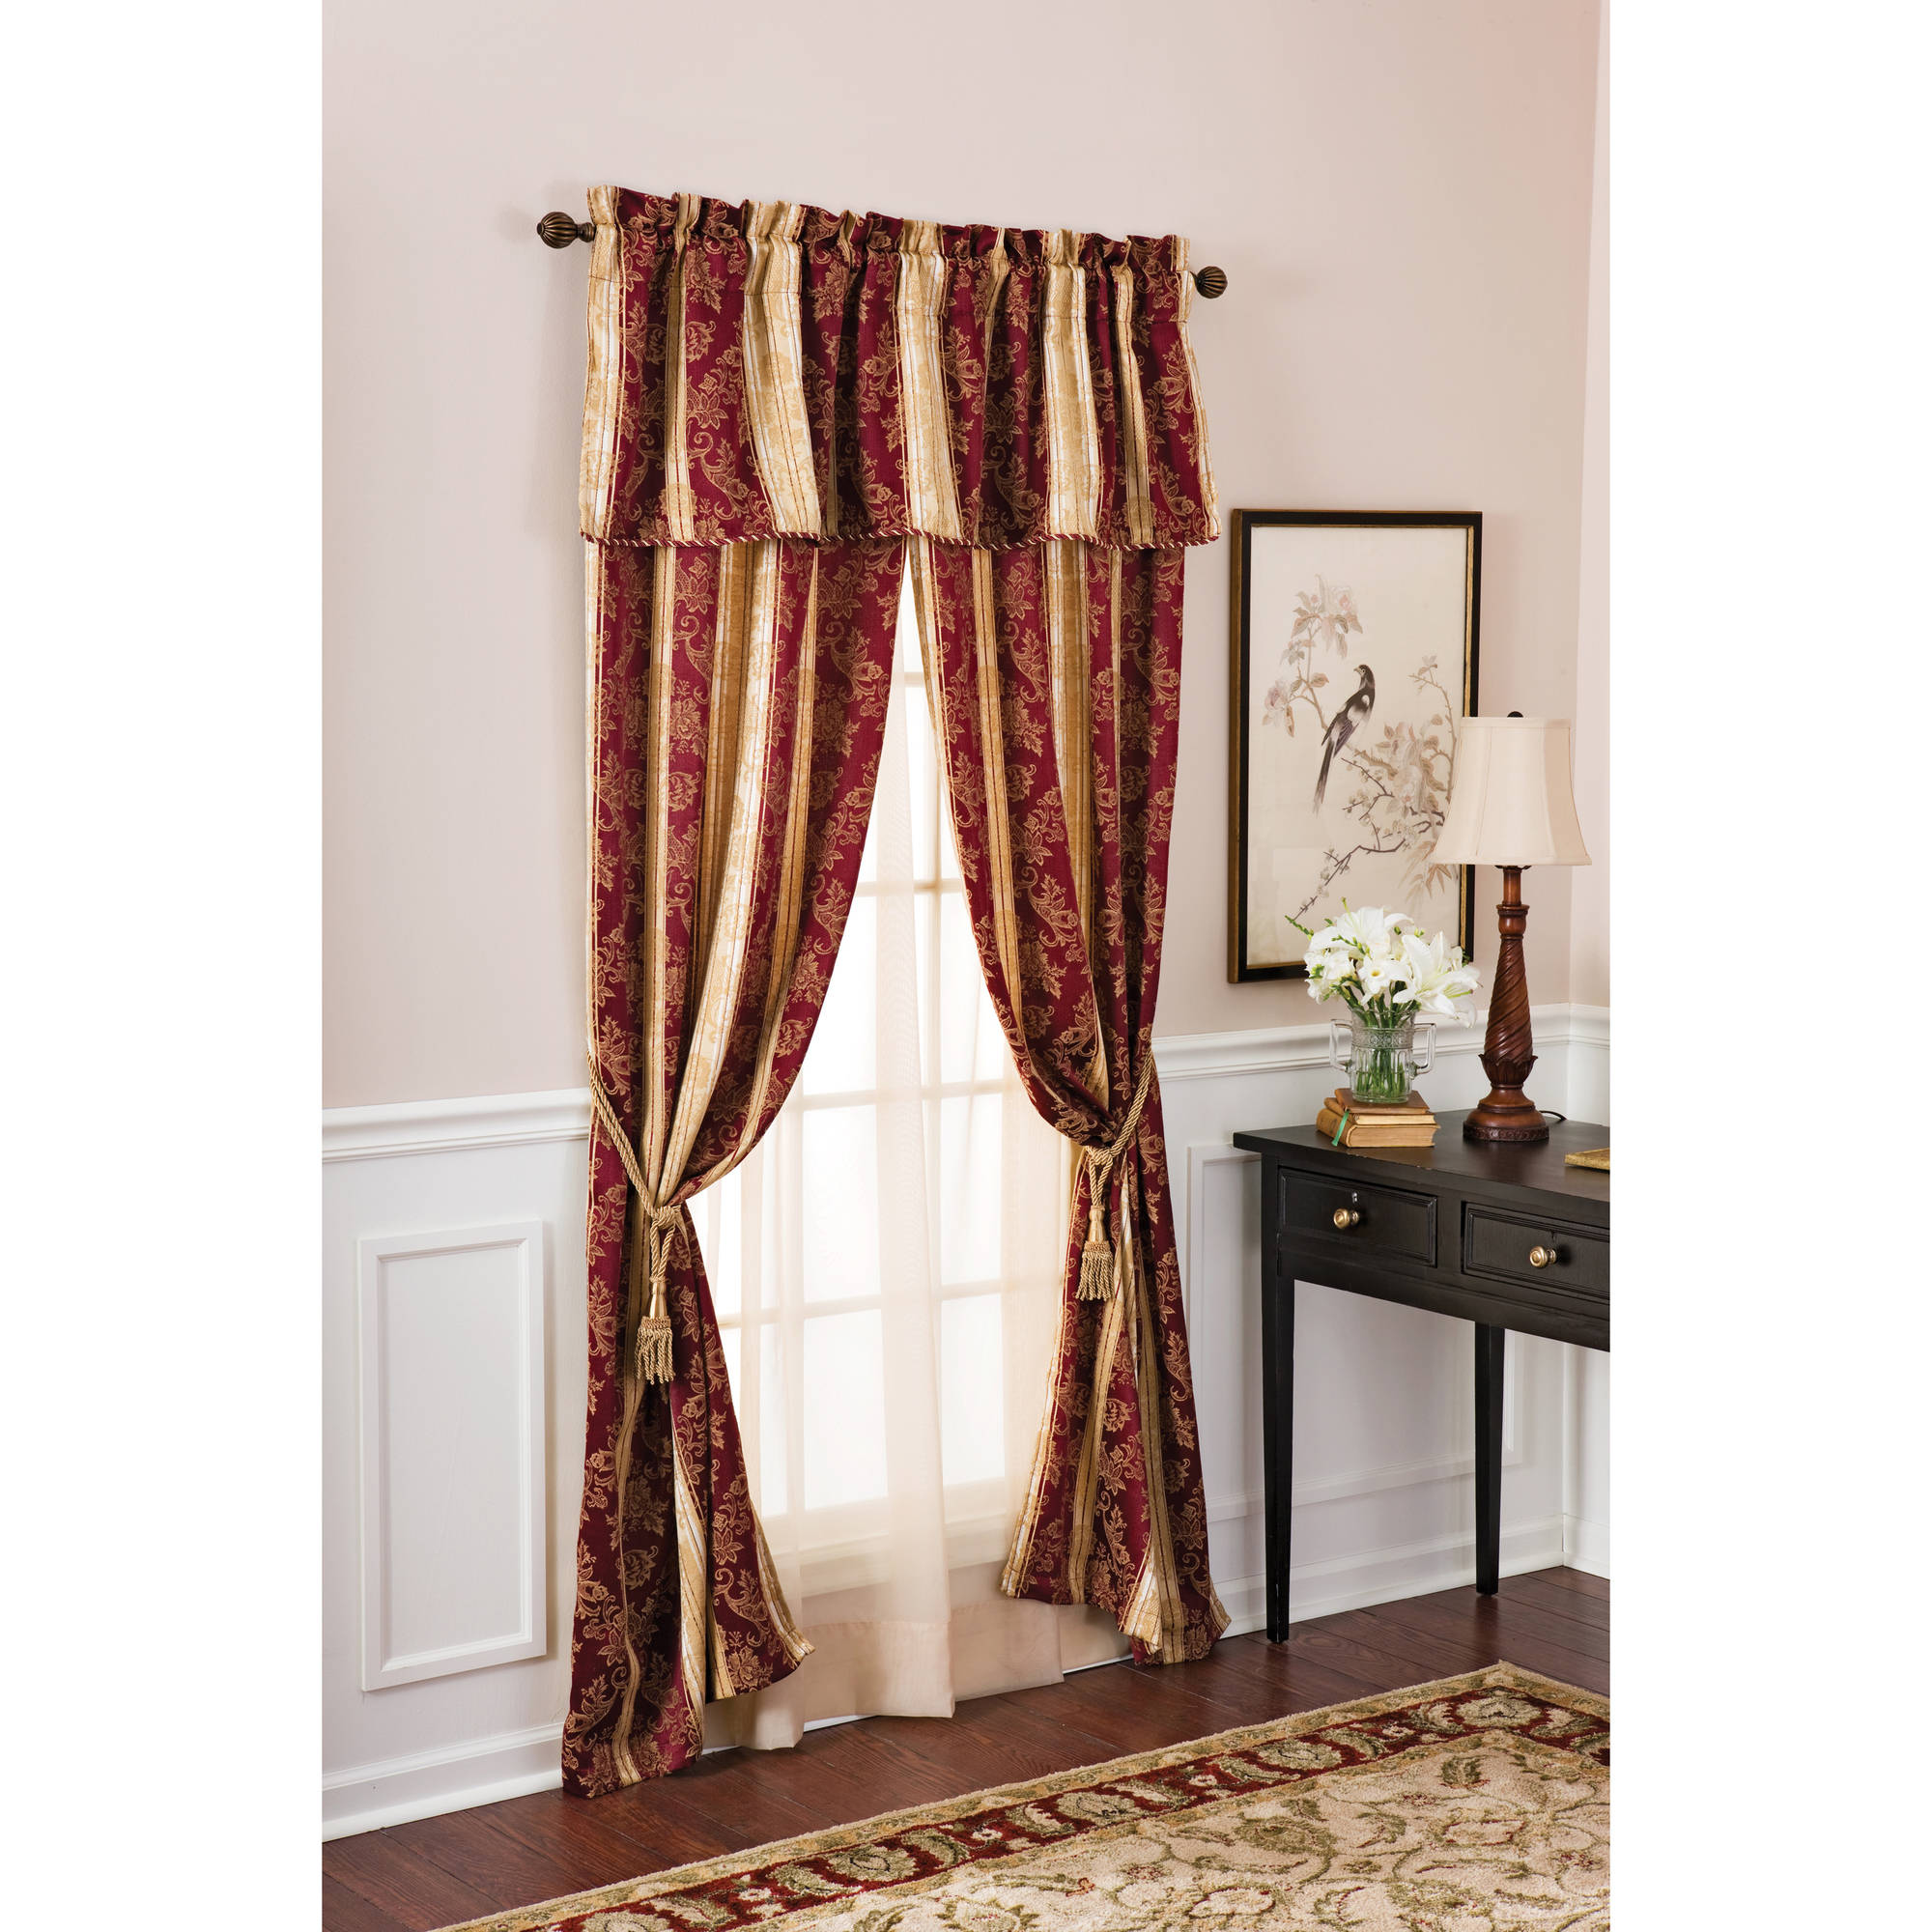 Better Homes and Gardens Osaka Window Set, Burgundy, 58'' x 84''